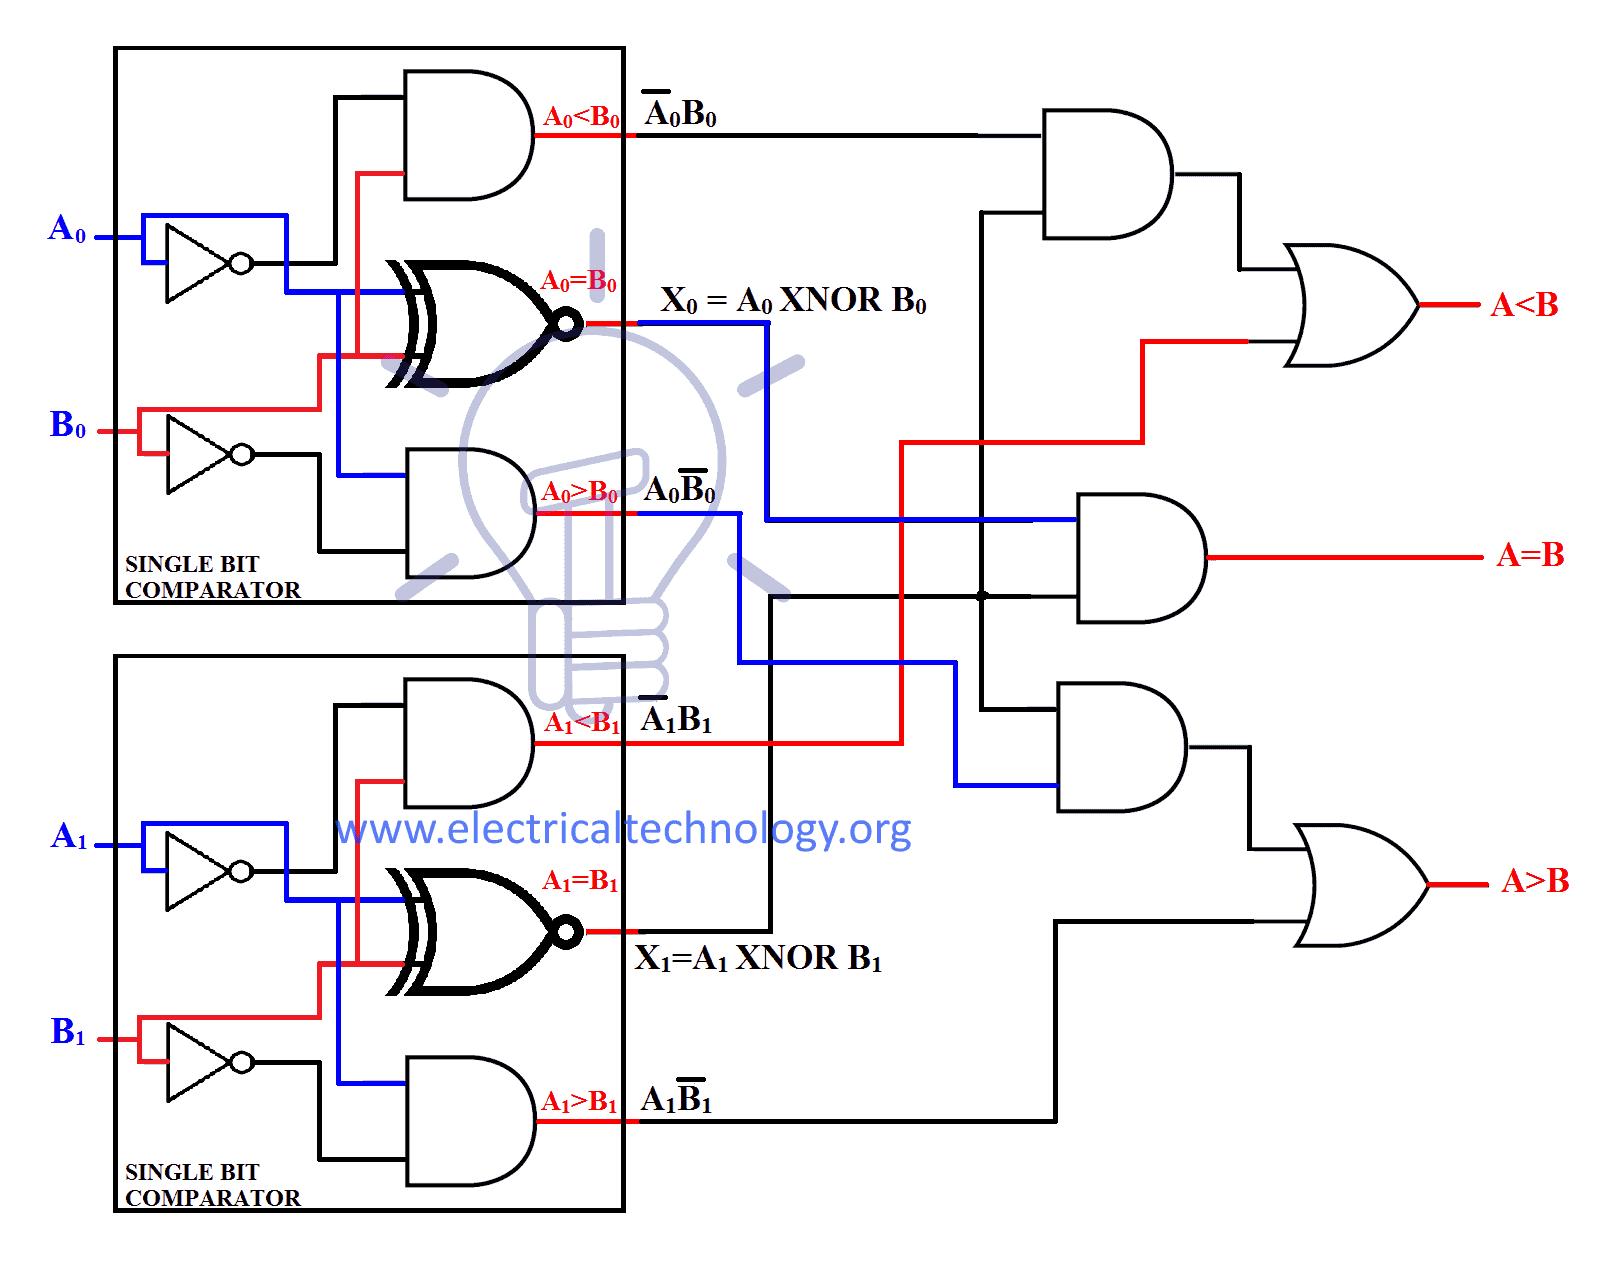 Combined 2-bit comparator